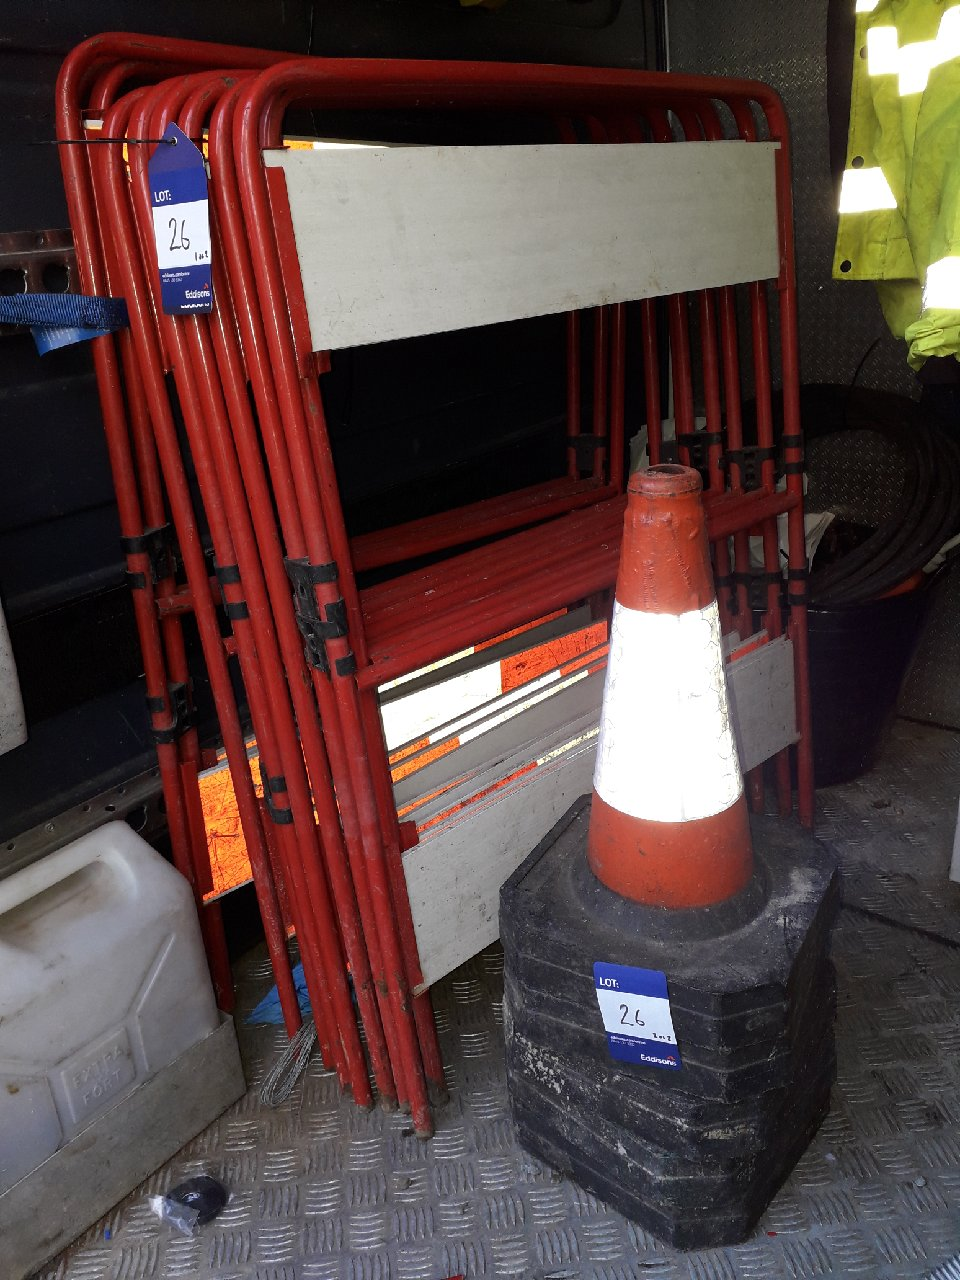 Lot 26 - 3 x work barriers and 5 x road cones. (Please note: Viewing is by appointment only. Please Tel: 0161